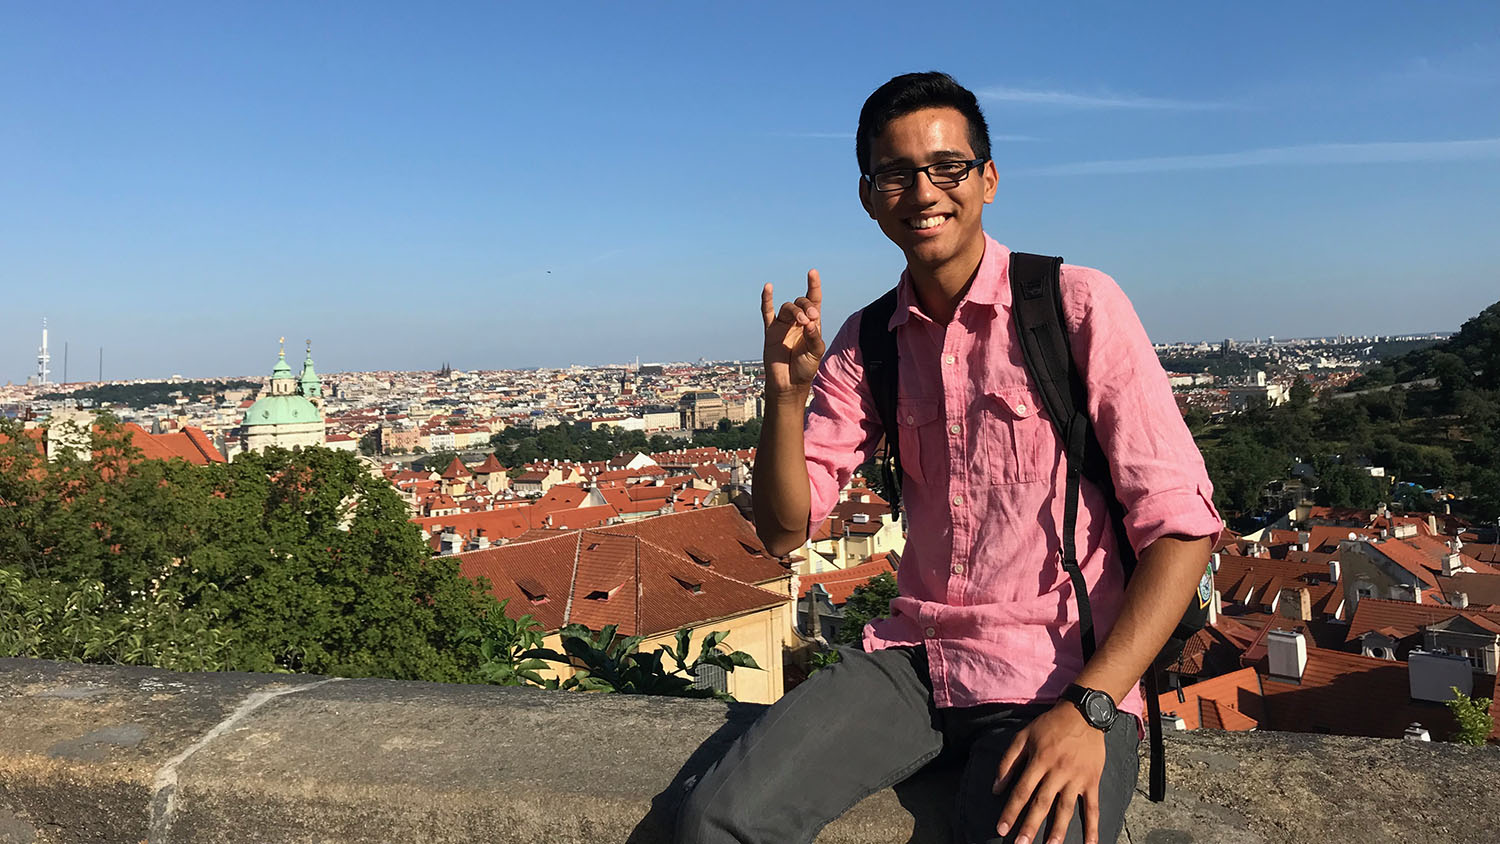 Daniel Amparo poses while conducting research in Germany